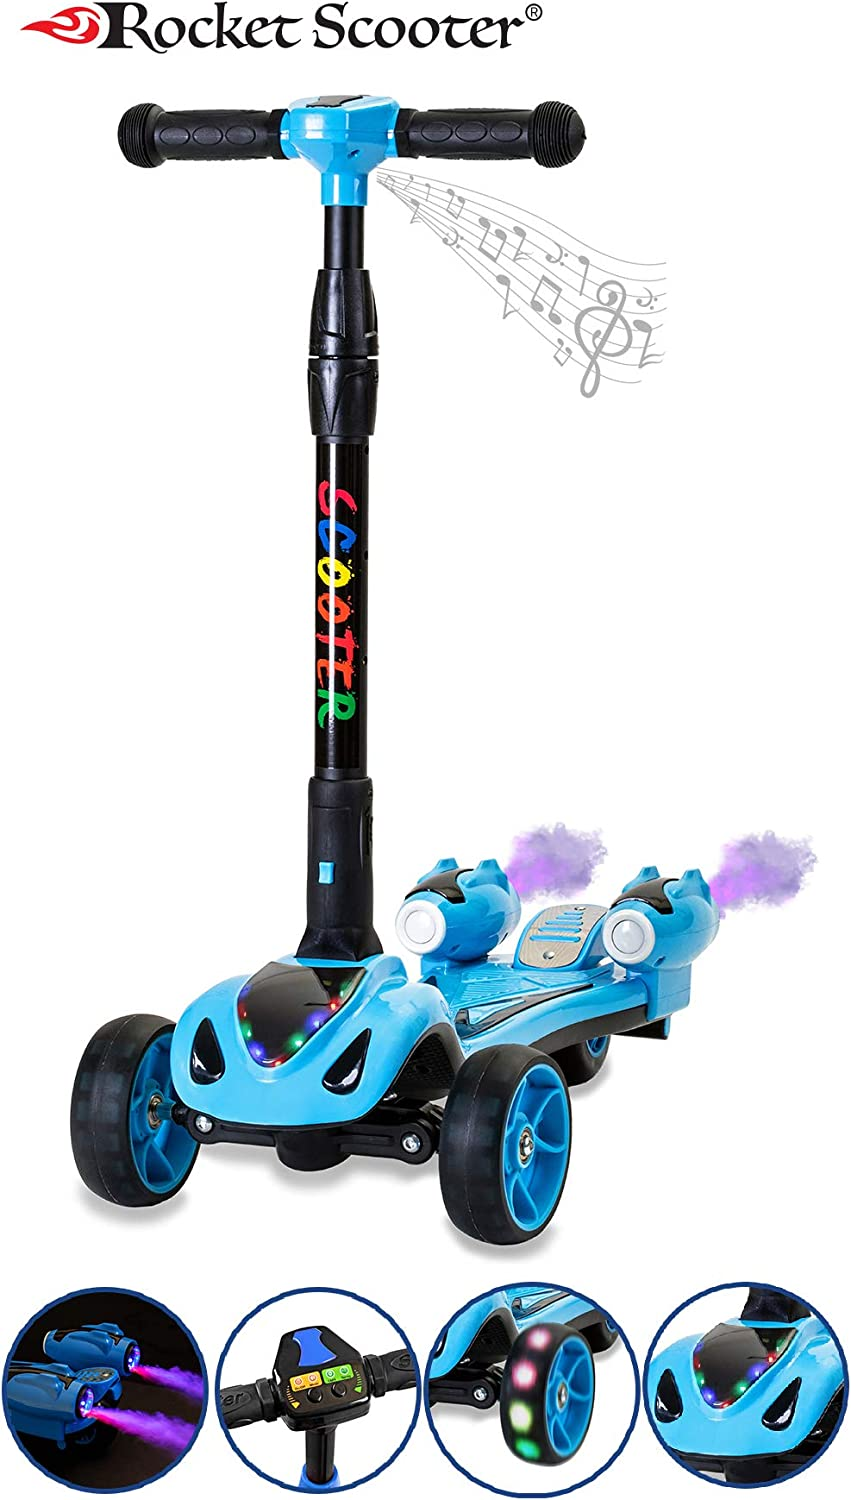 The Original Rocket Scooter, Kids Kick Scooter, Music, 3 Colors Lighted Wheels, Spray Lights, Sturdy Steering Handlebar, Stable Board, Adjustable Height Foldable Design